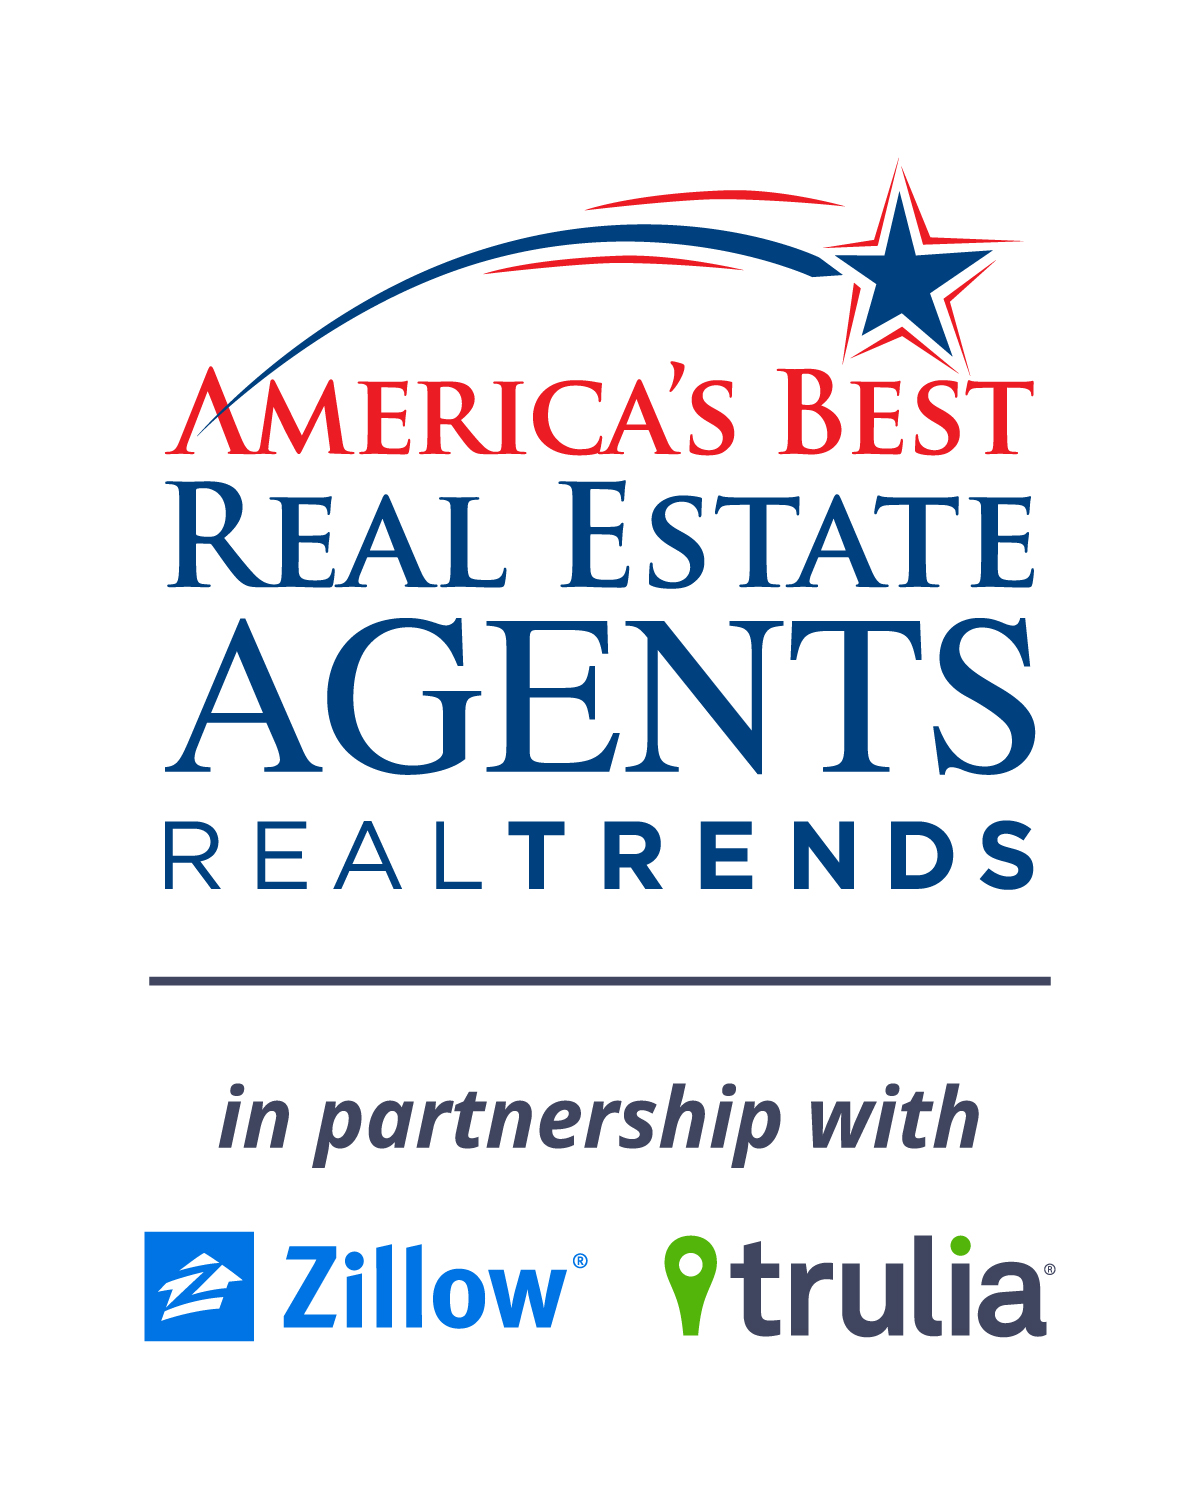 Elevate Realty Group Real Trends Best Agents